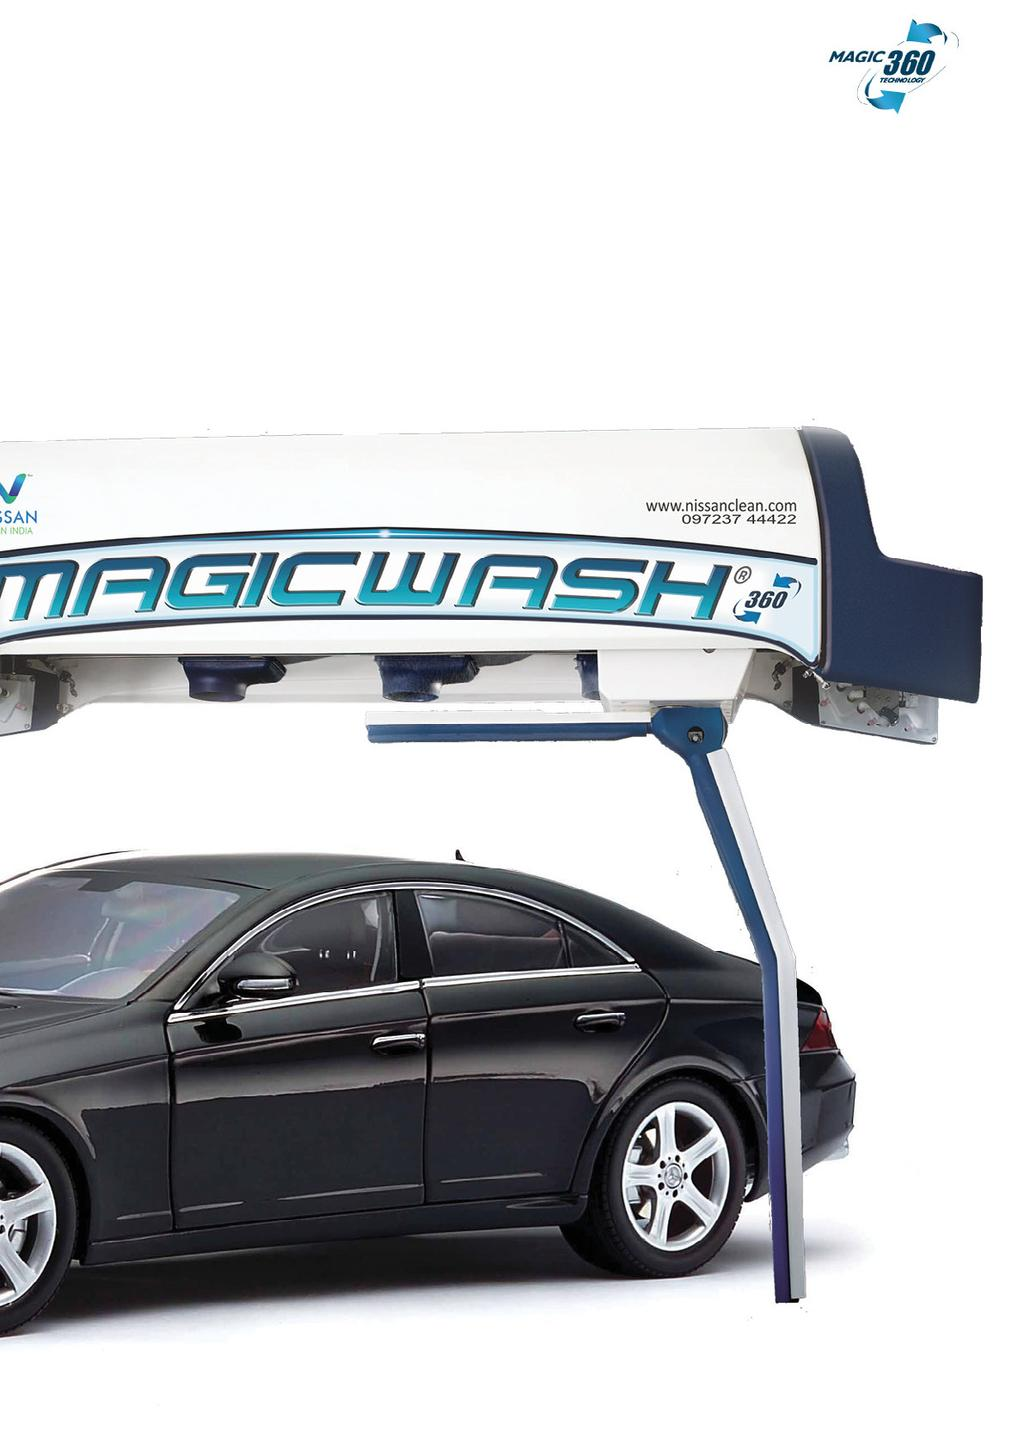 Magicwash 360 is an automatic computer operated machine, fully automated, without manual operation, automatic completion of the vehicle cleaning, waxing, polishing, water spray and air-dried to